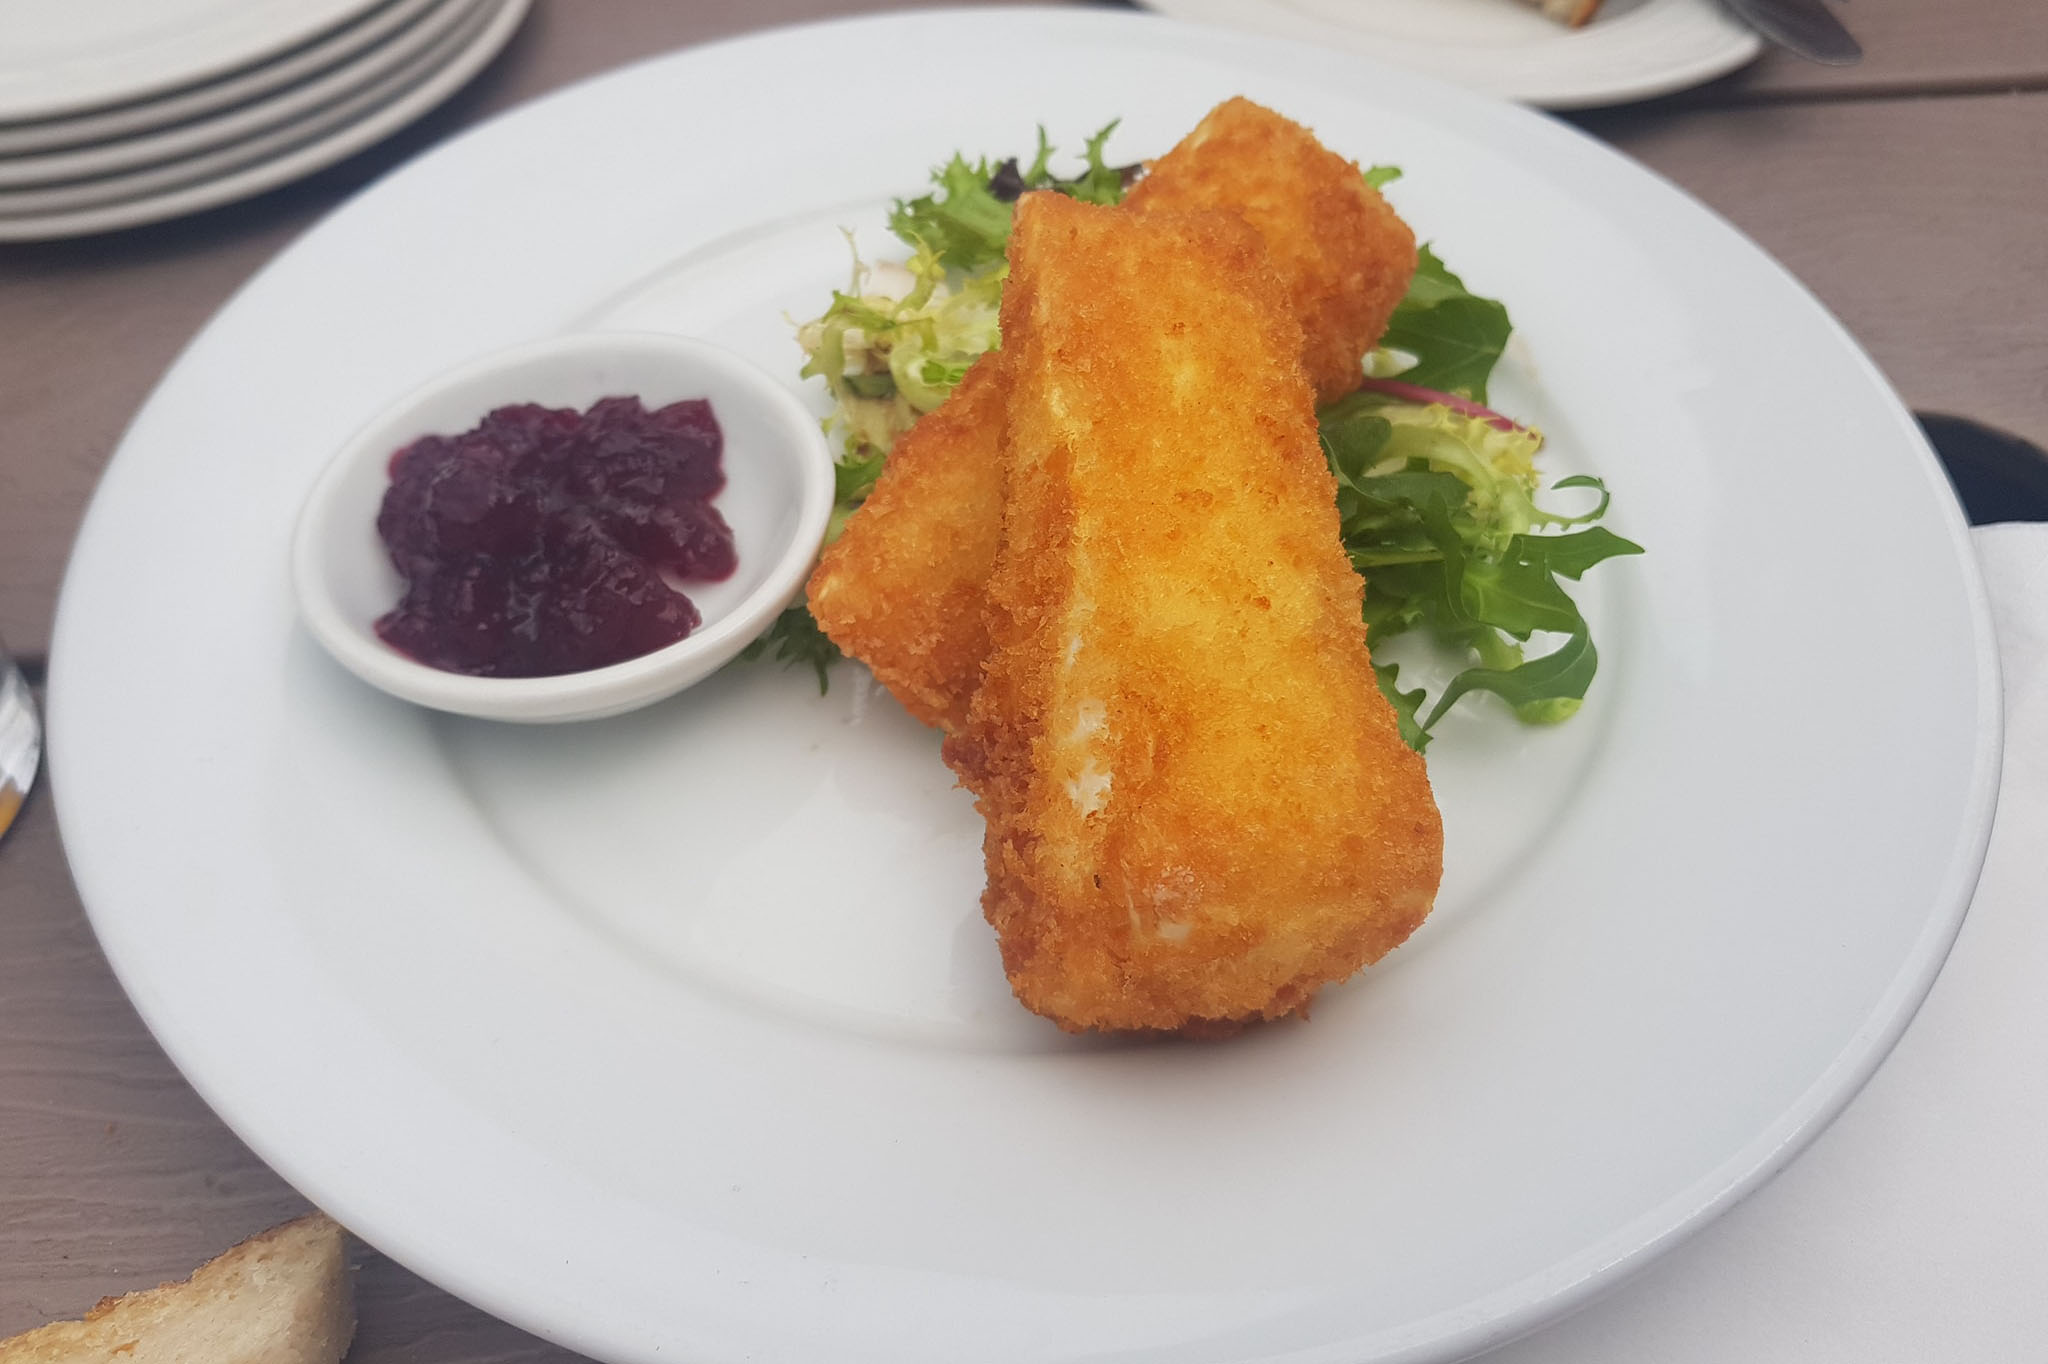 DEEP FRIED BRIE